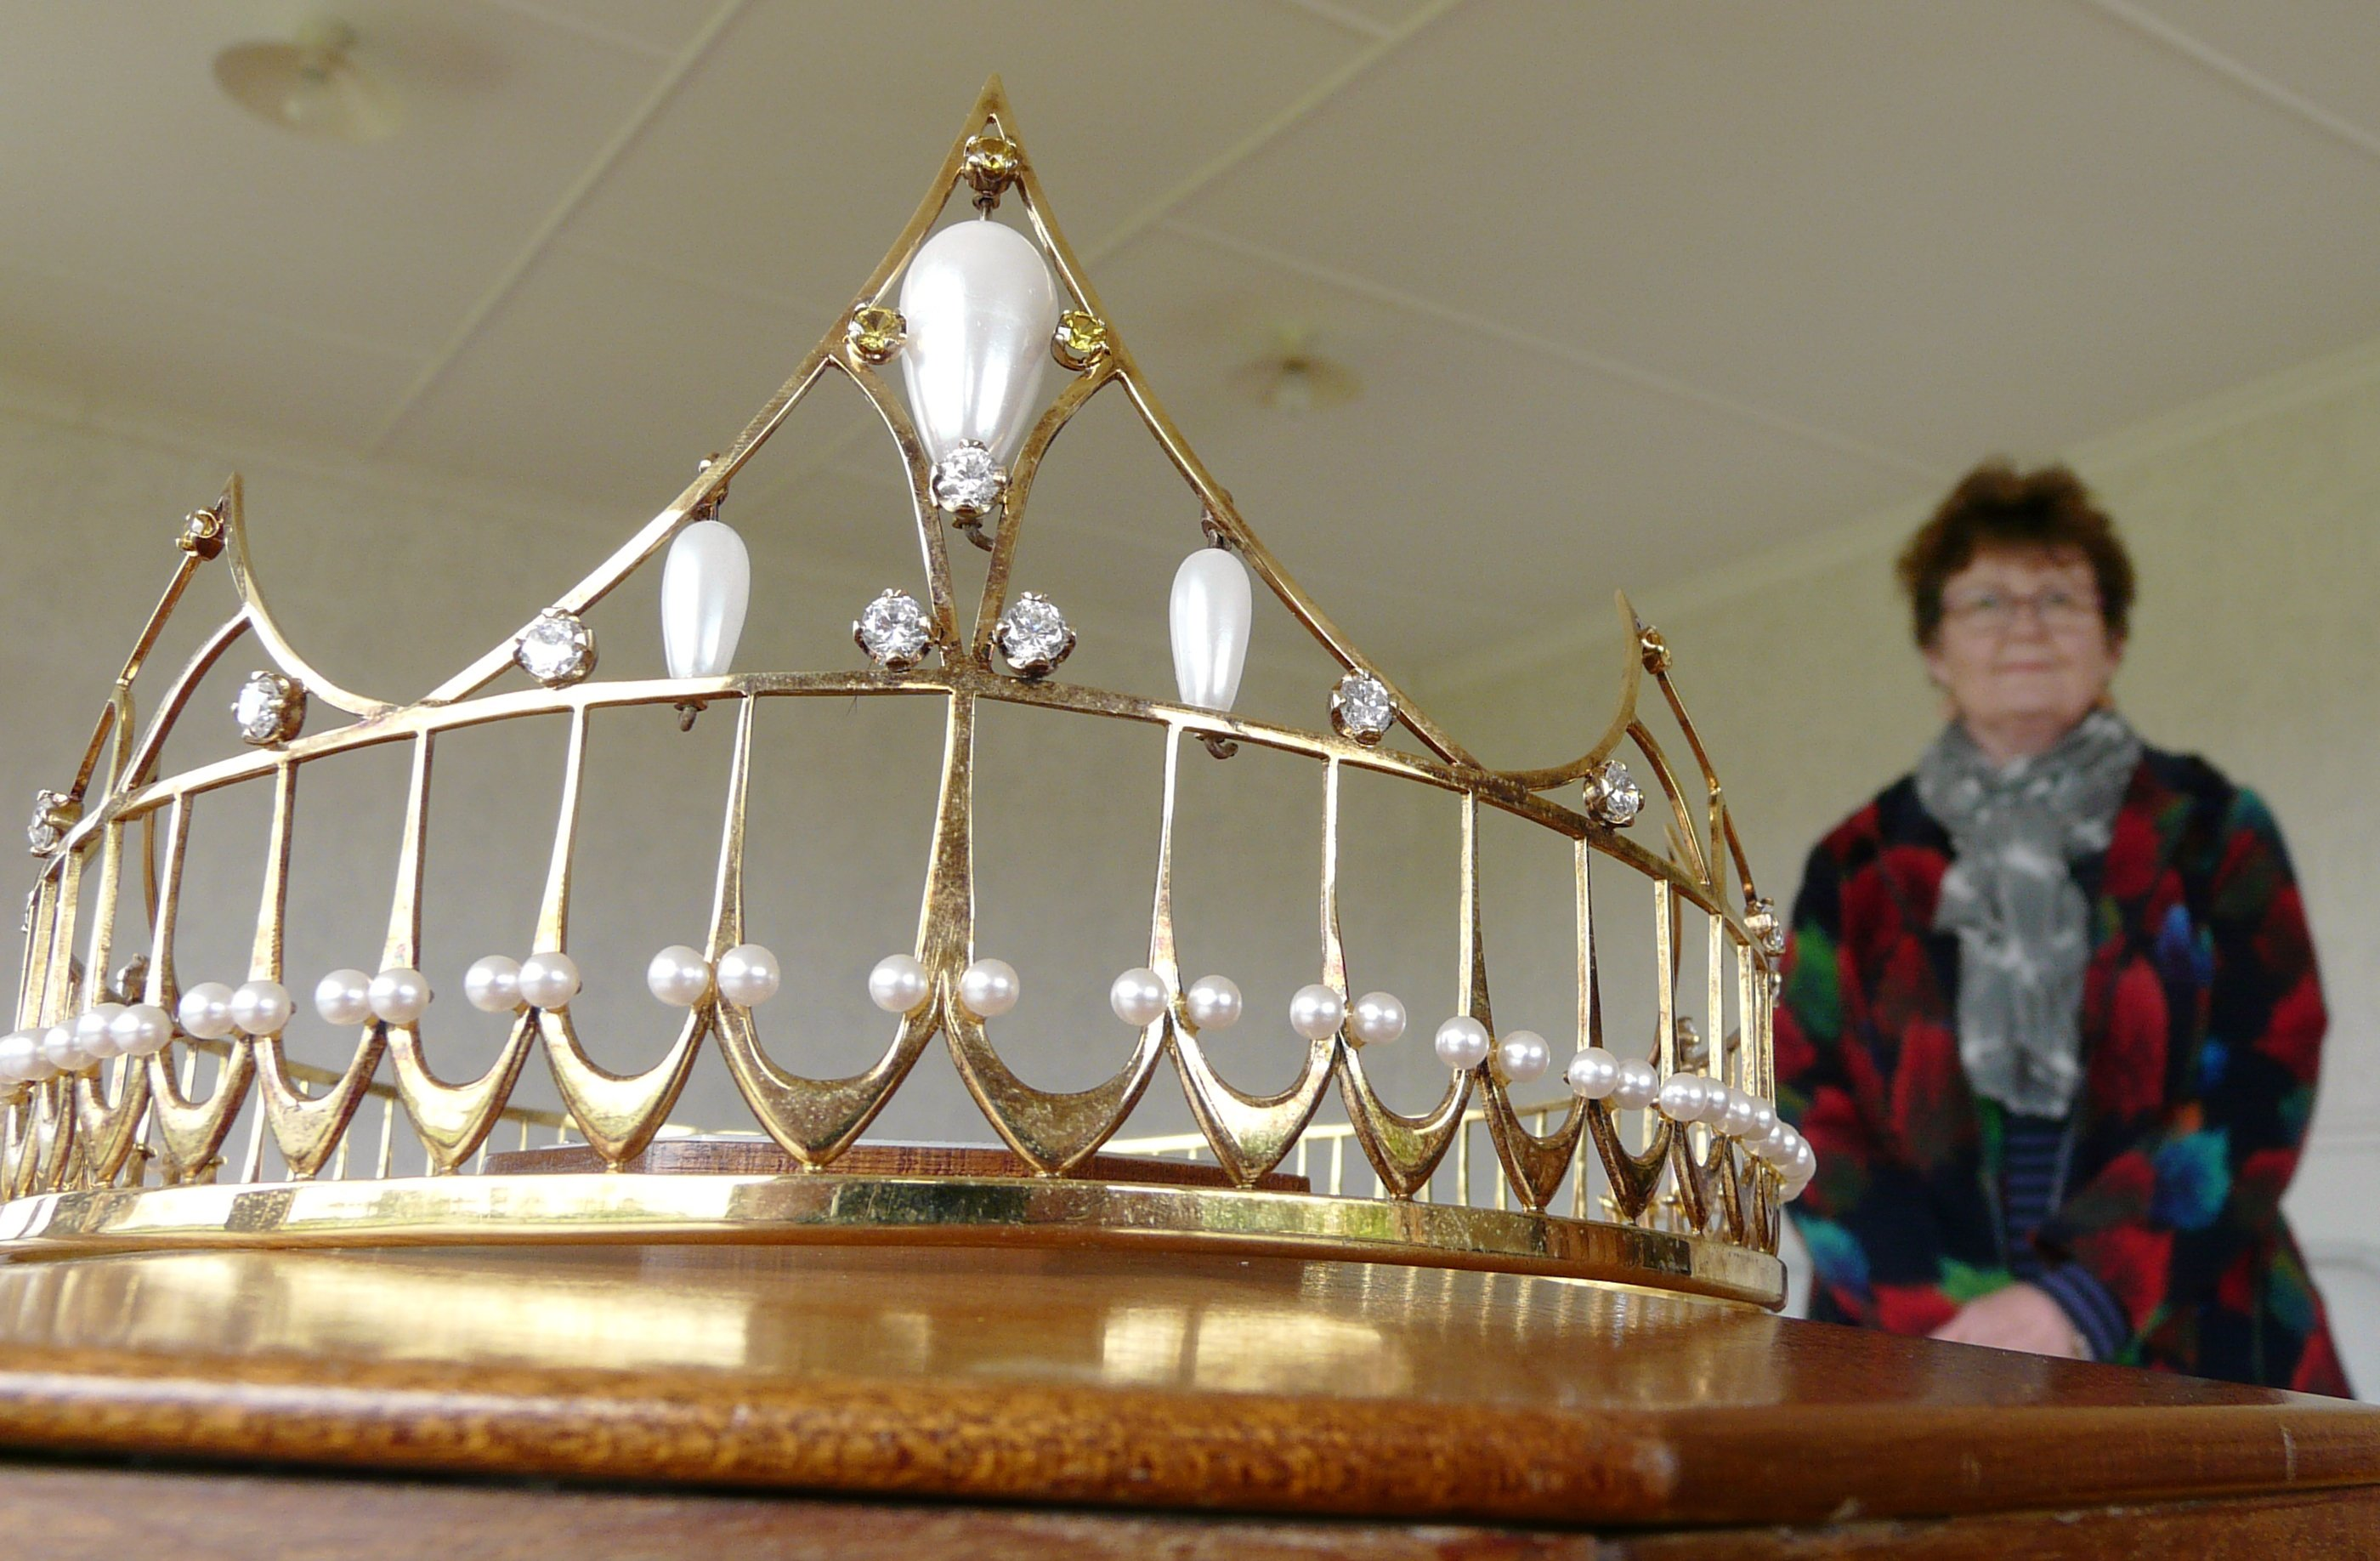 The South Otago A&P Society may be without a show queen for the first time in 51 years because of insufficient entries this year, secretary Heather Dudfield says. Photo: Richard Davison